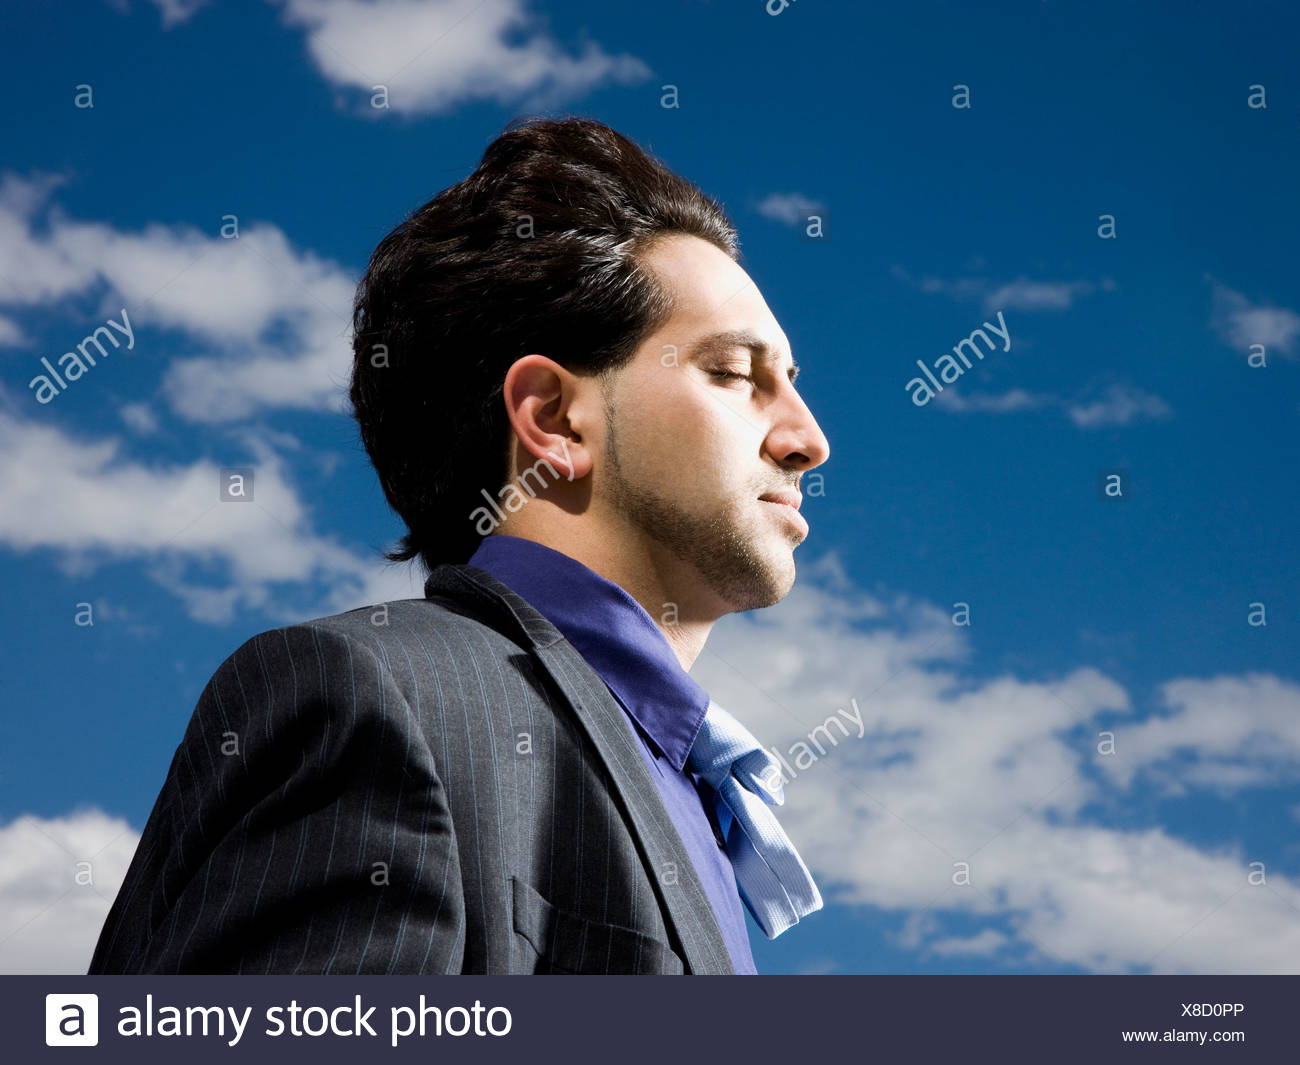 man in a suit with head tilted back - Stock Image